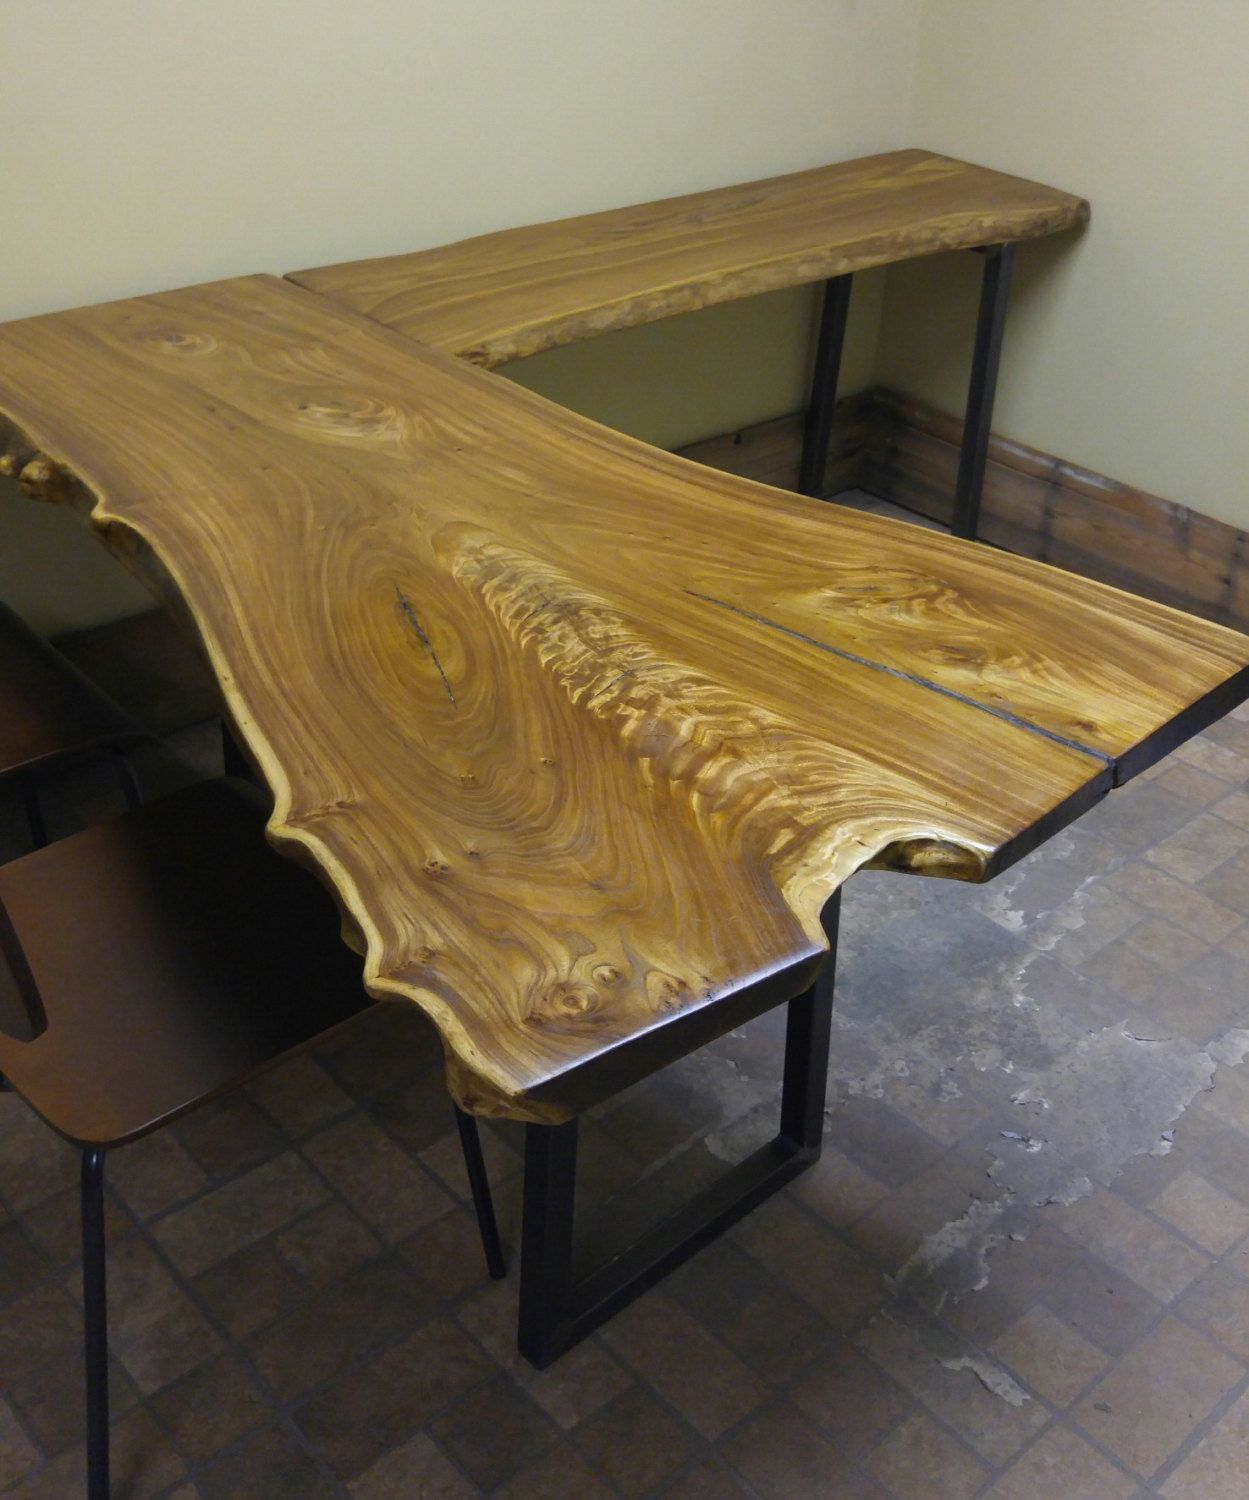 Natural edge dining table w steel hairpin legs from impact imports of - Live Edge Slab L Shaped Desks Siberian Elm And Walnut Elm Siberian Elm Walnut Black Walnut Tables Desk Live Edge Desk Slab Desk Slab Table Live Edge